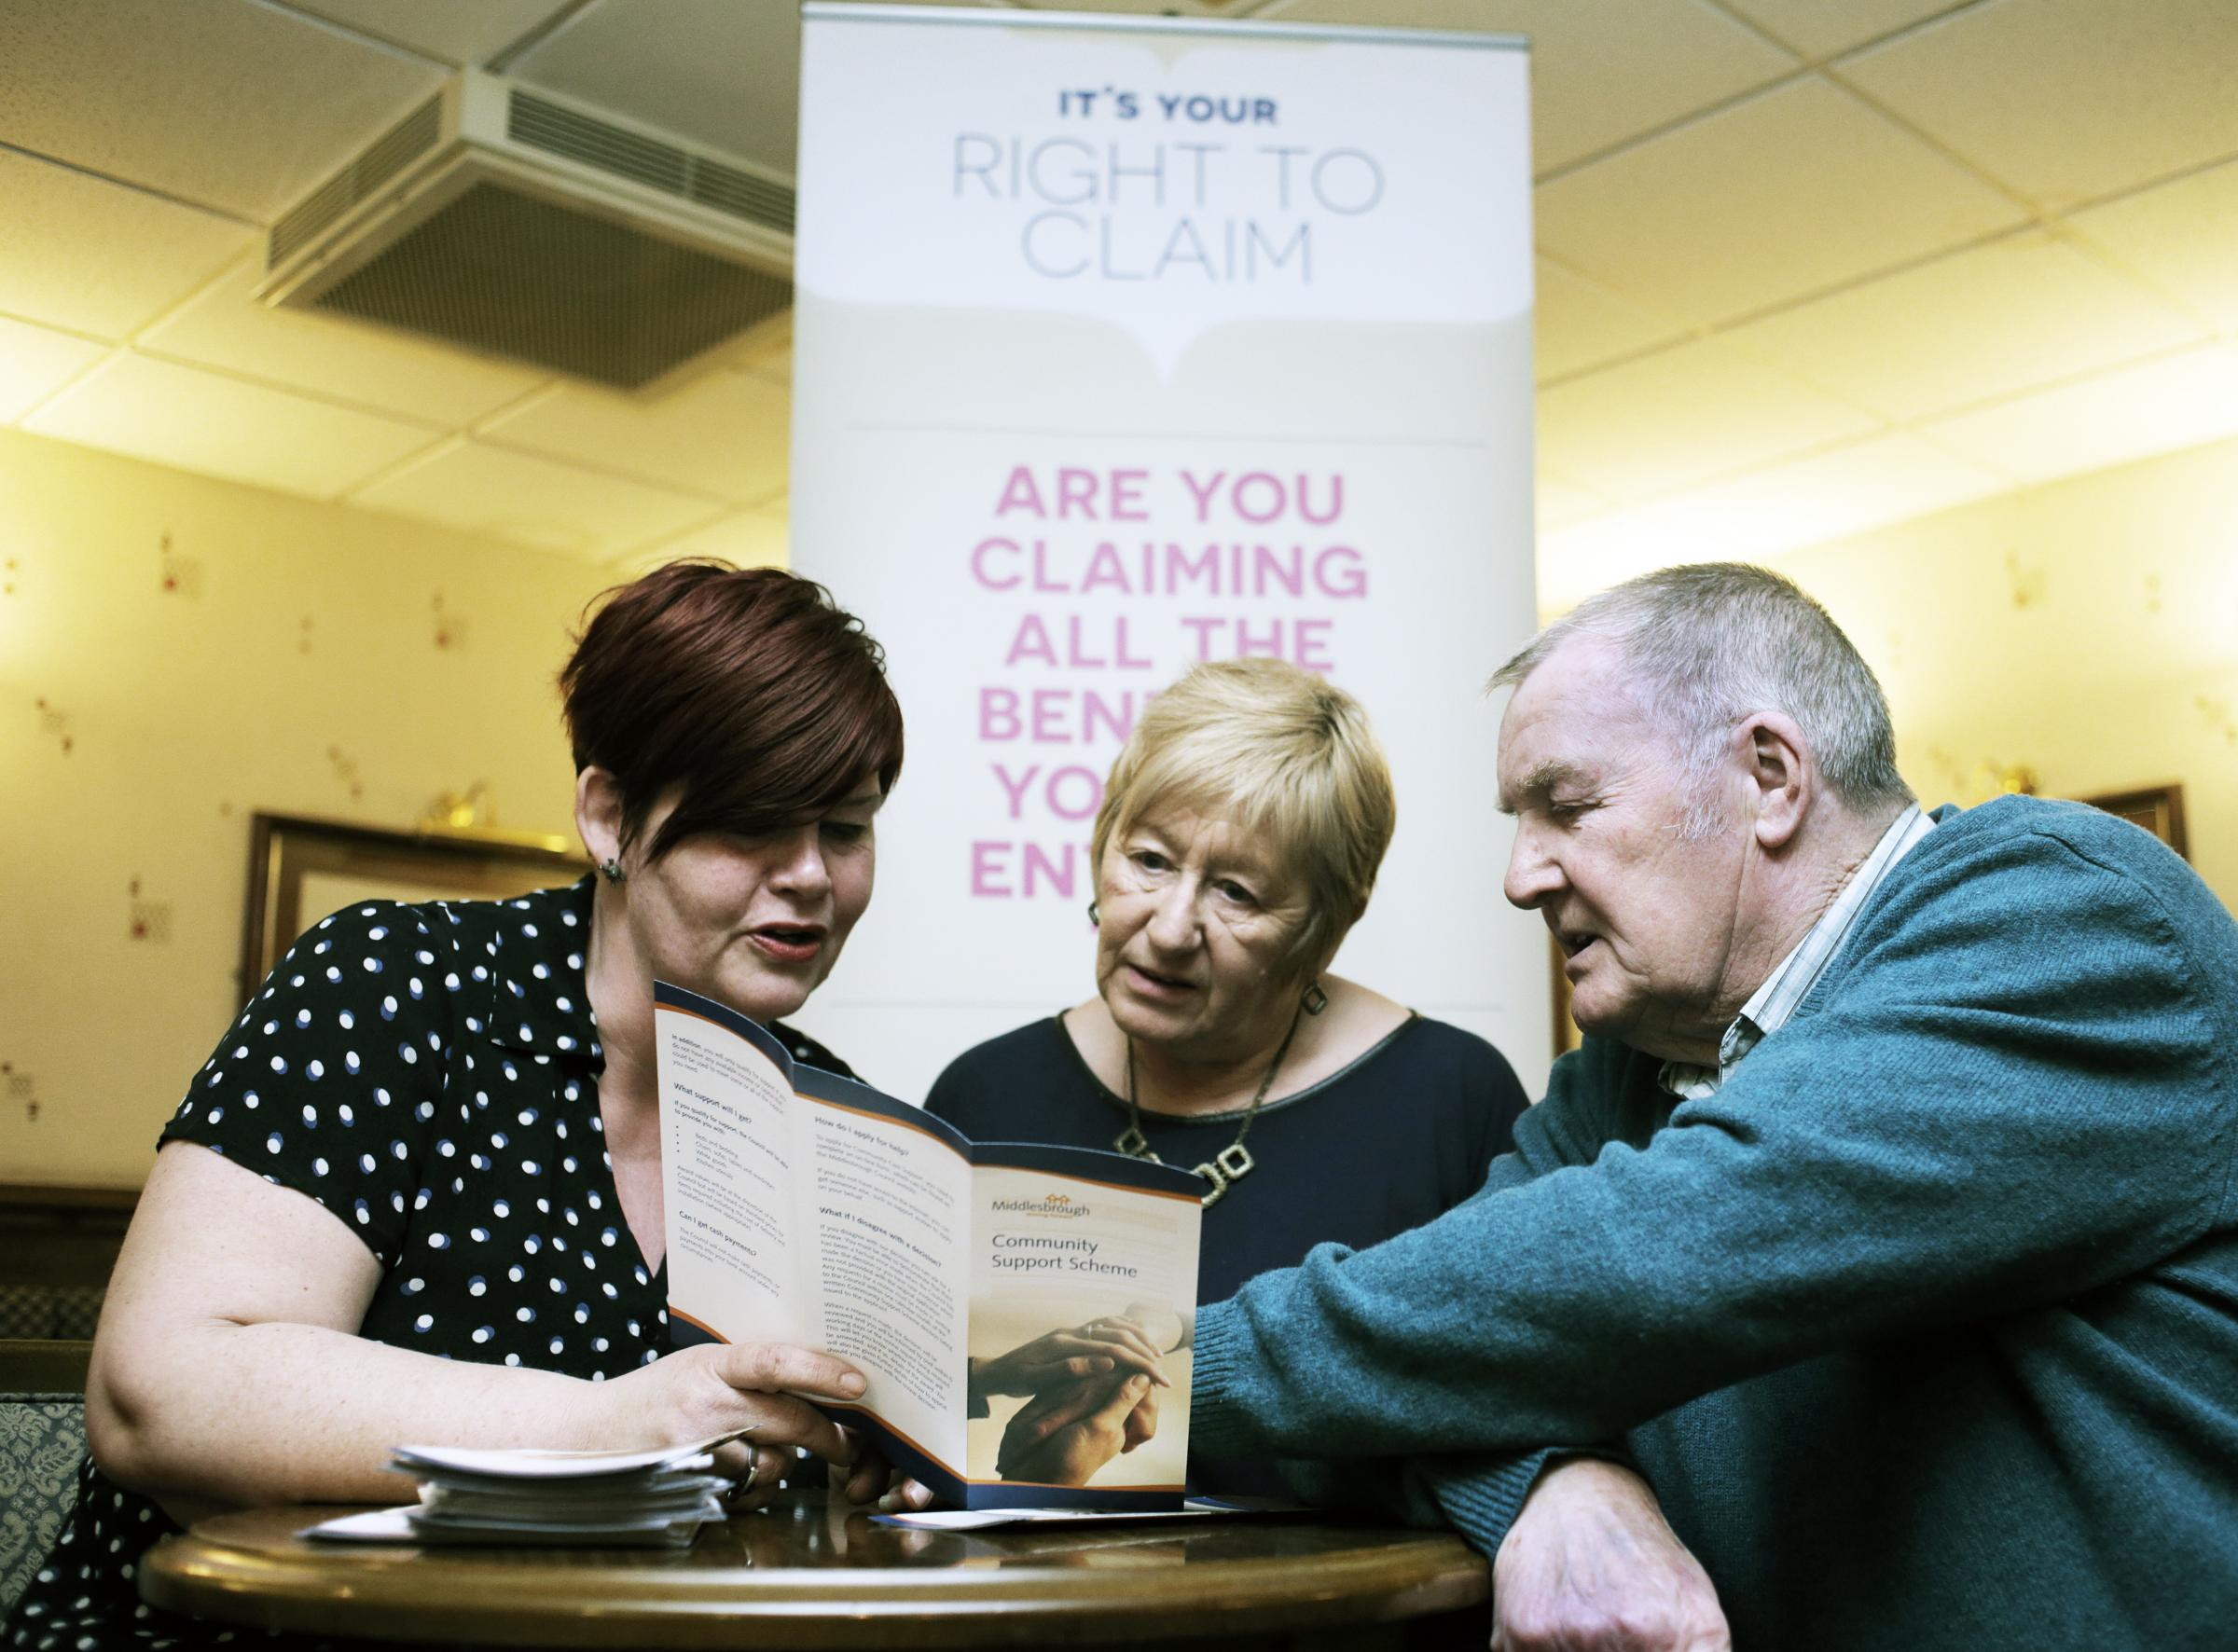 From left, Jo McNally of the Middlesbrough Partnership with local residents Susanne Wood and Gerry Kay take part in the right to claim project at Hemlington Social